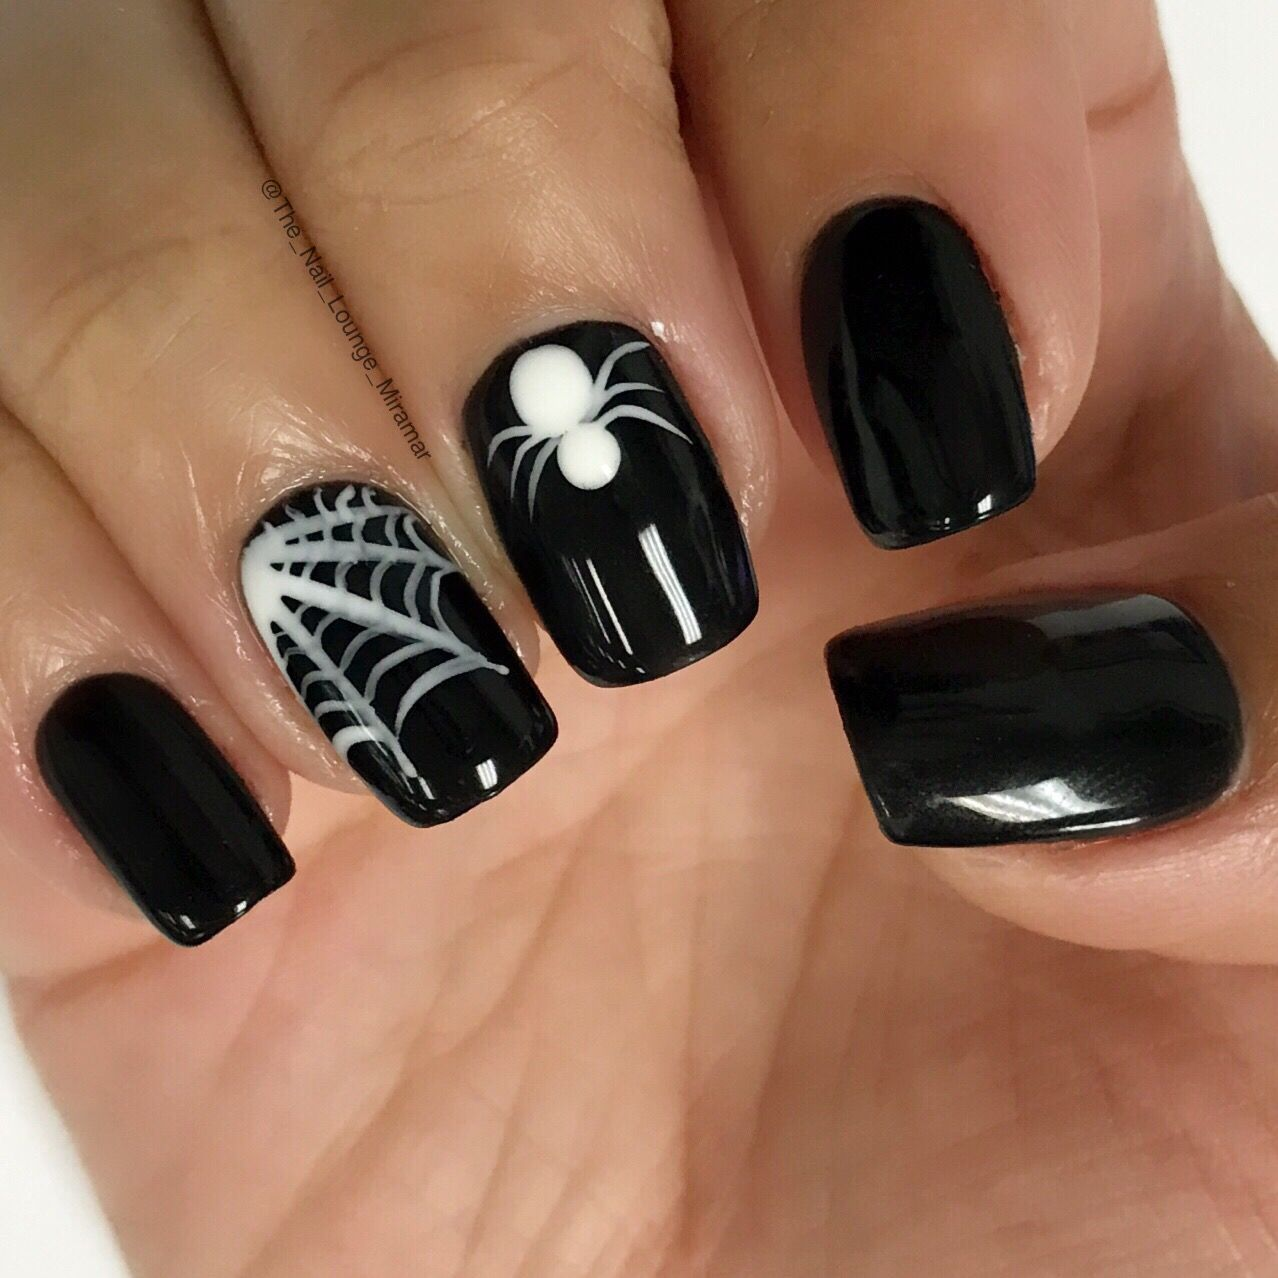 Spiderweb Halloween Nail Art Design Halloween Nails Easy Halloween Nails Diy Cute Halloween Nails